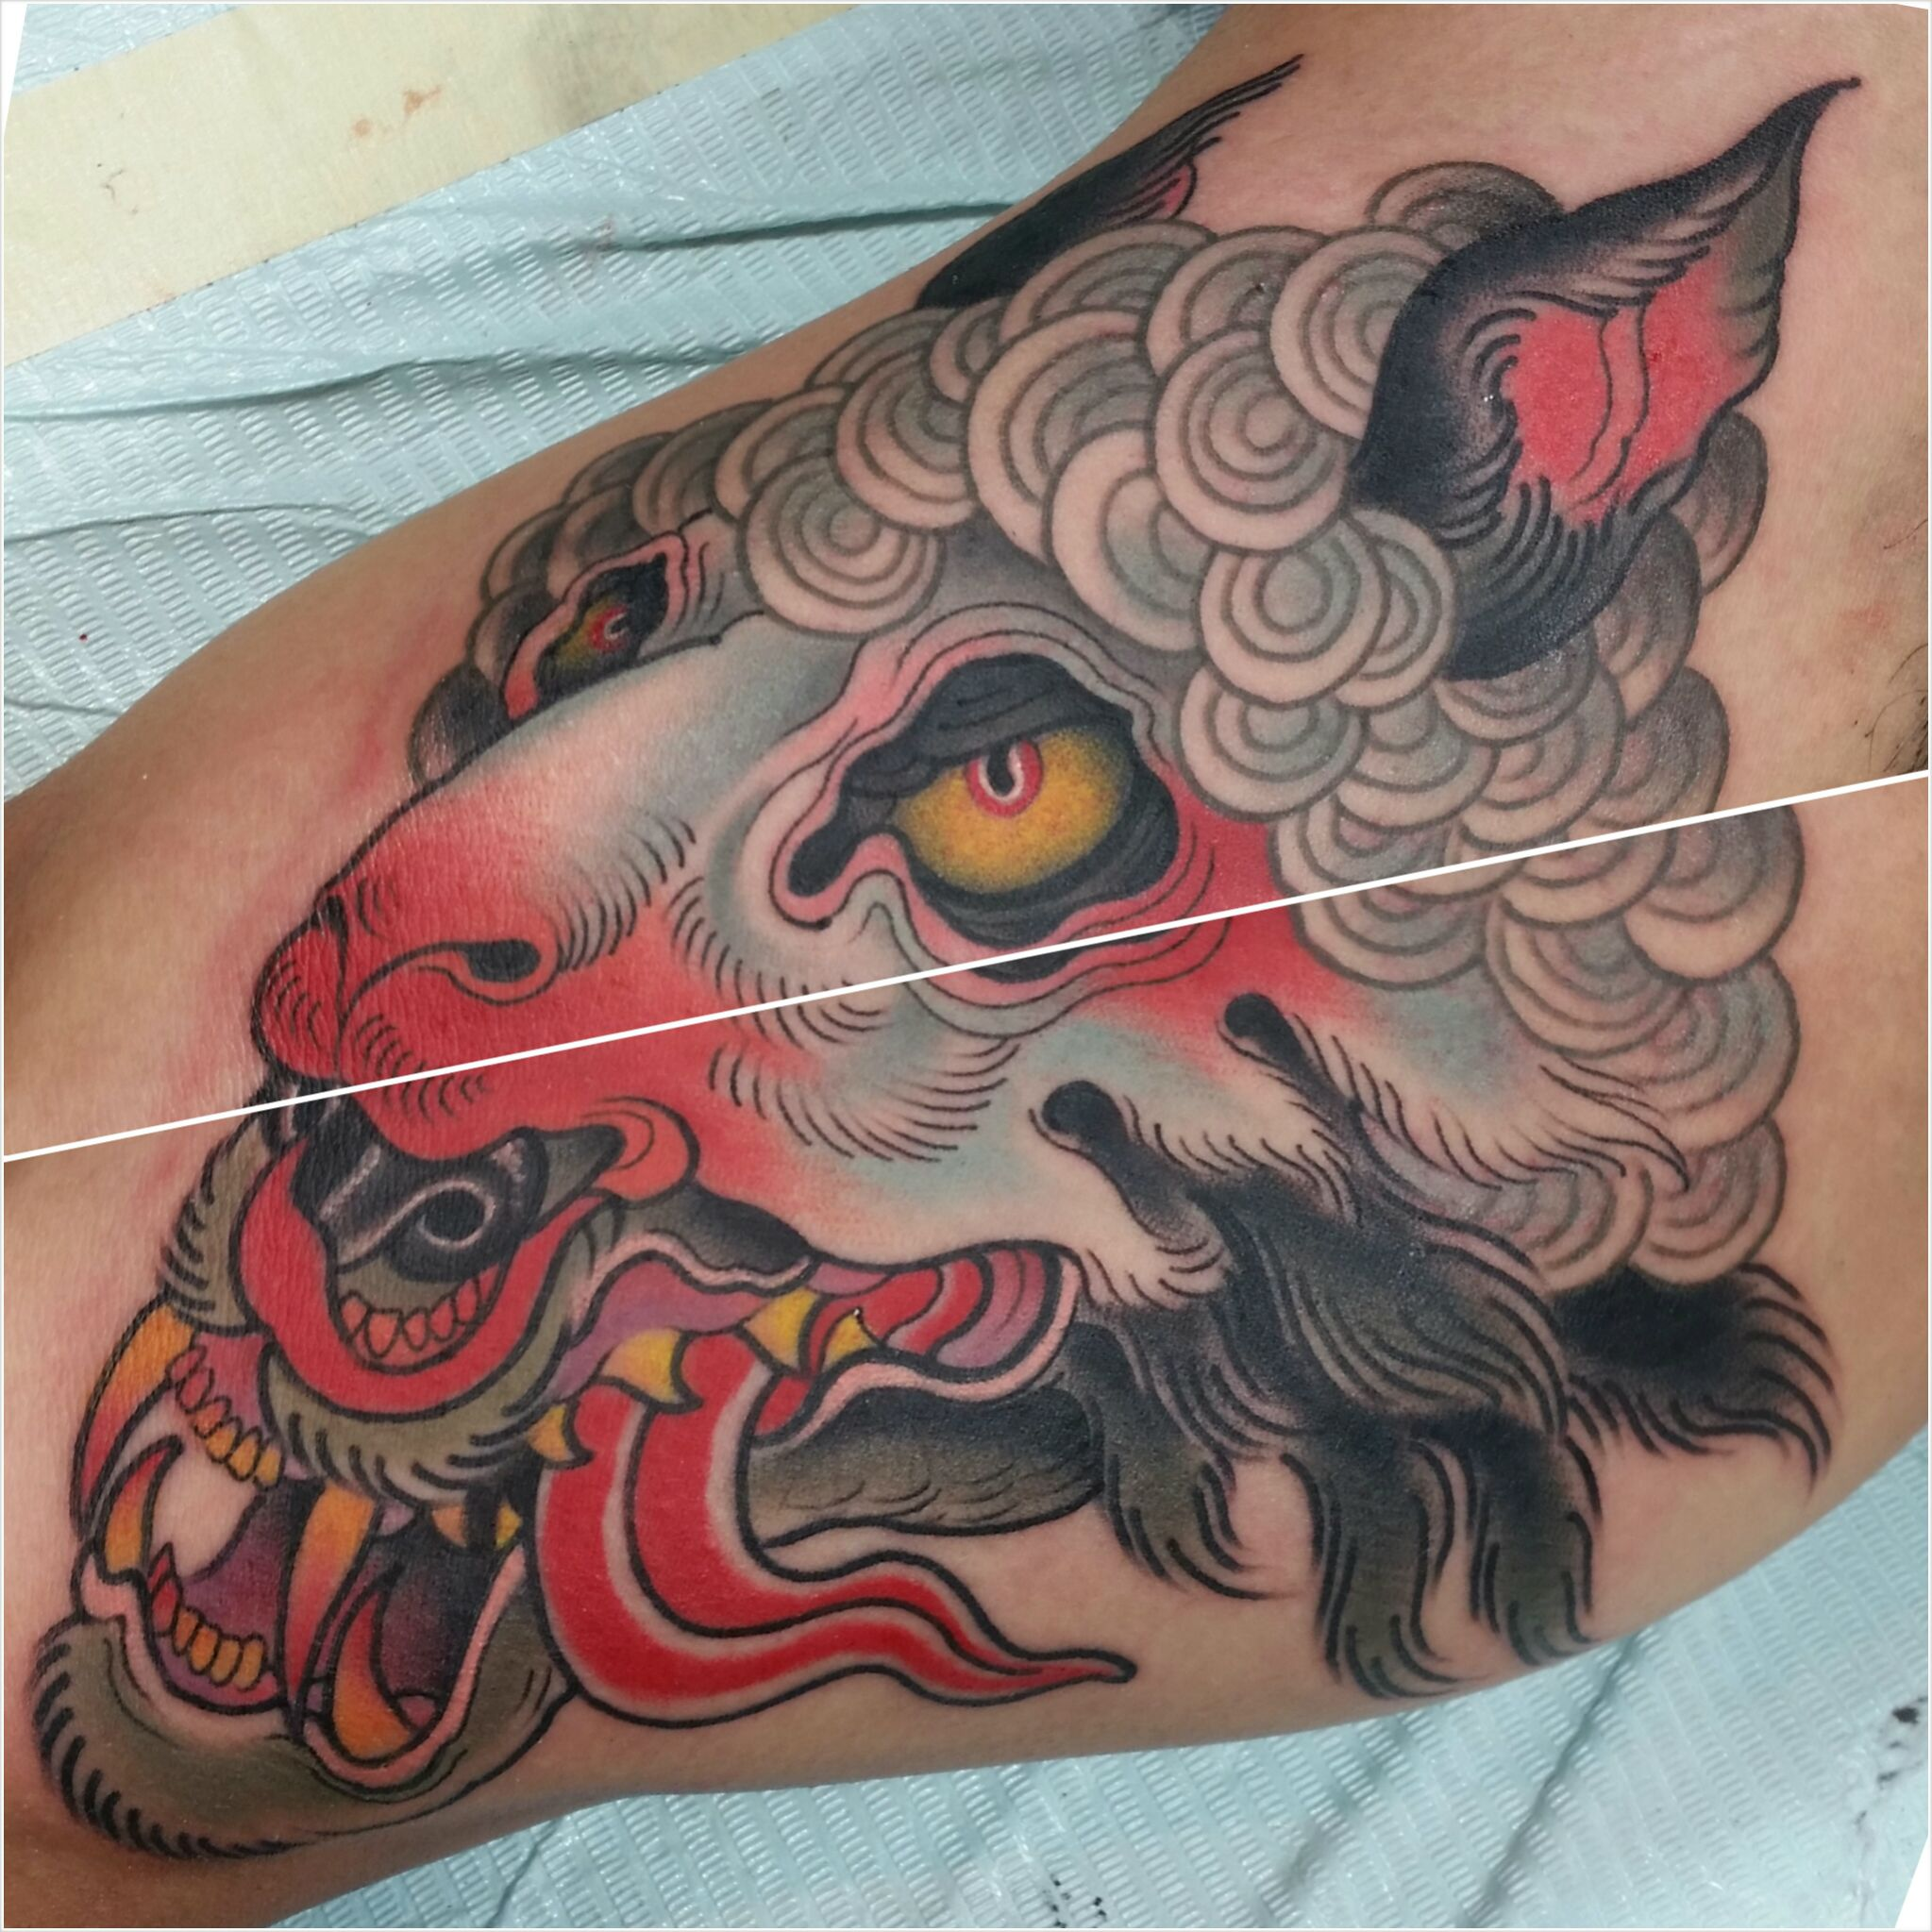 wolf in sheeps clothing 39 inner arm by chong tramontana full circle tattoo san diego. Black Bedroom Furniture Sets. Home Design Ideas